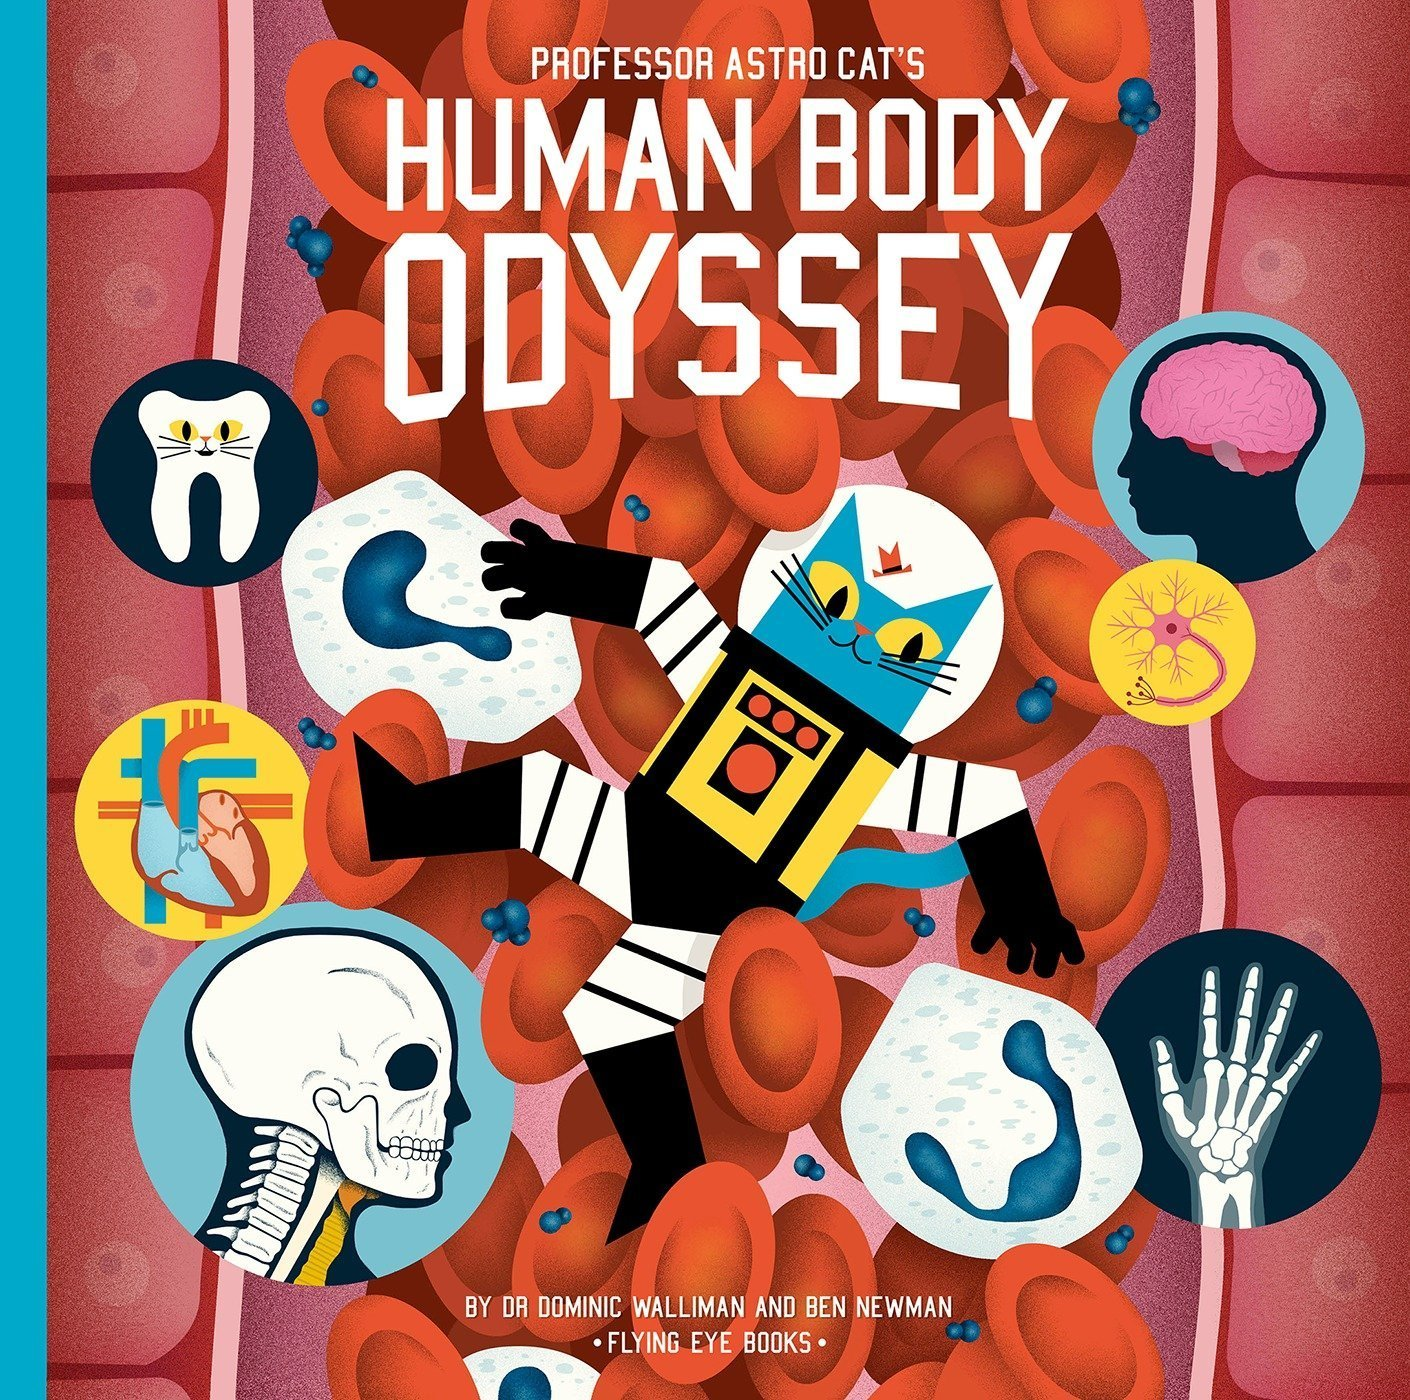 Professor Astro Cat's Human Body Odyssey by Dr. Dominic Waliman